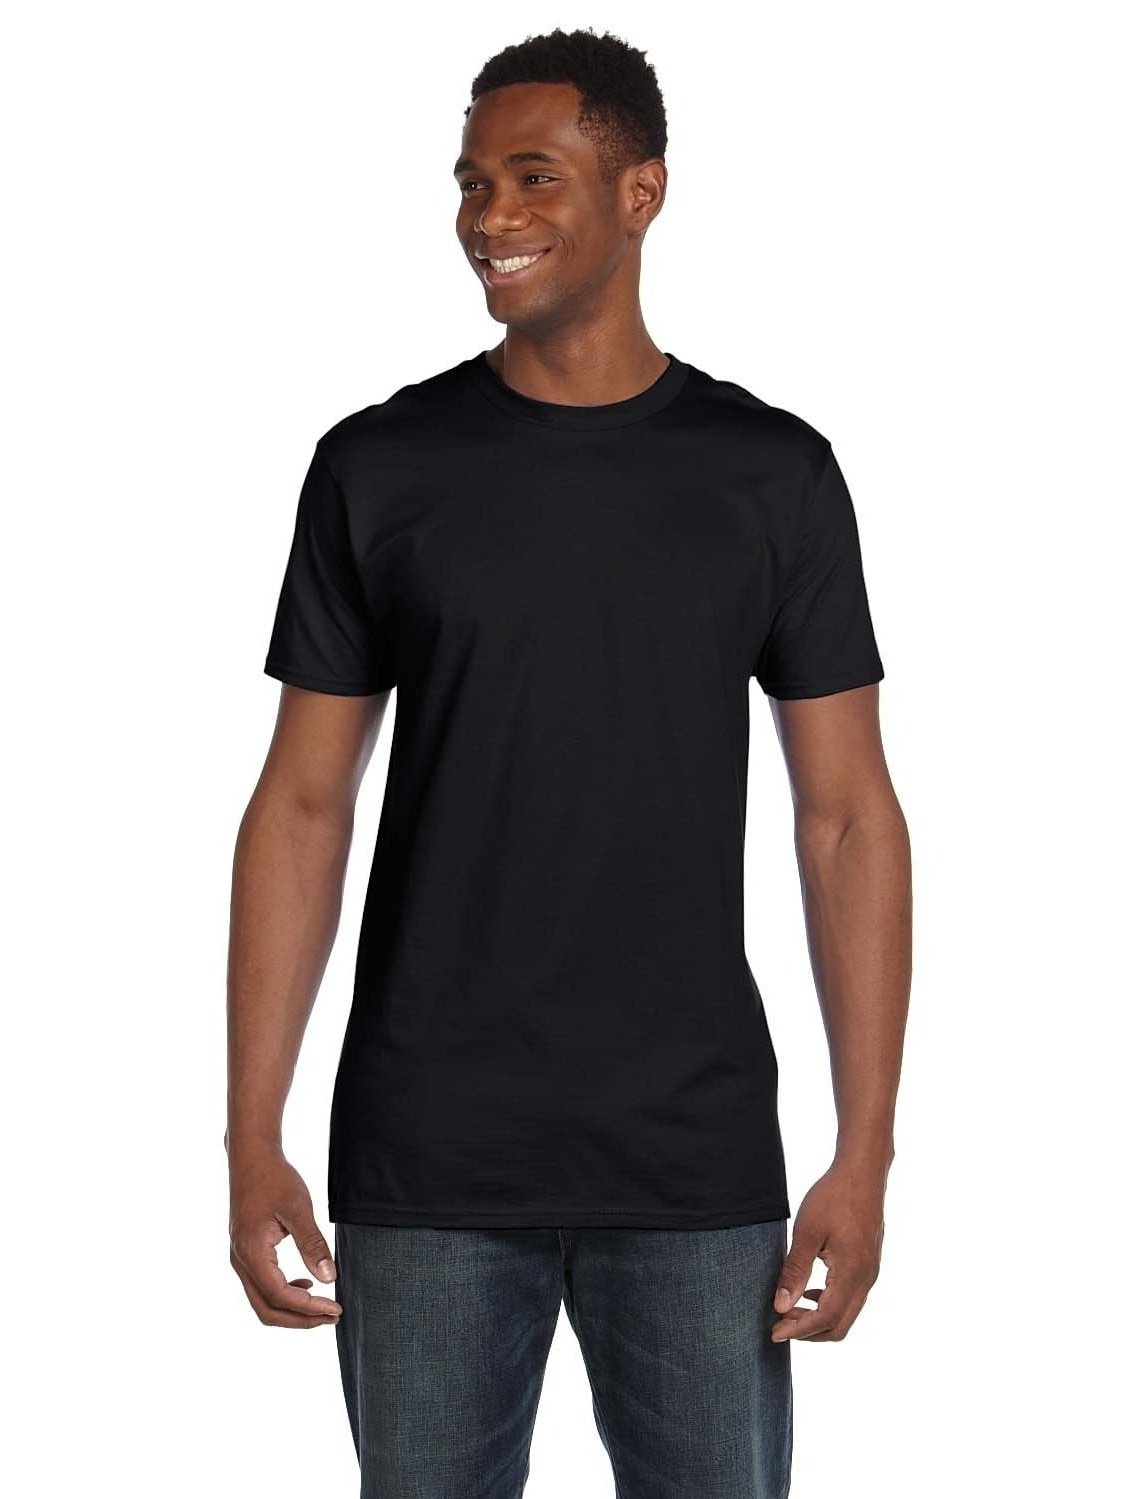 Hanes  Men's Black Ringspun Cotton Nano-T Undershirts (Pack of 9)